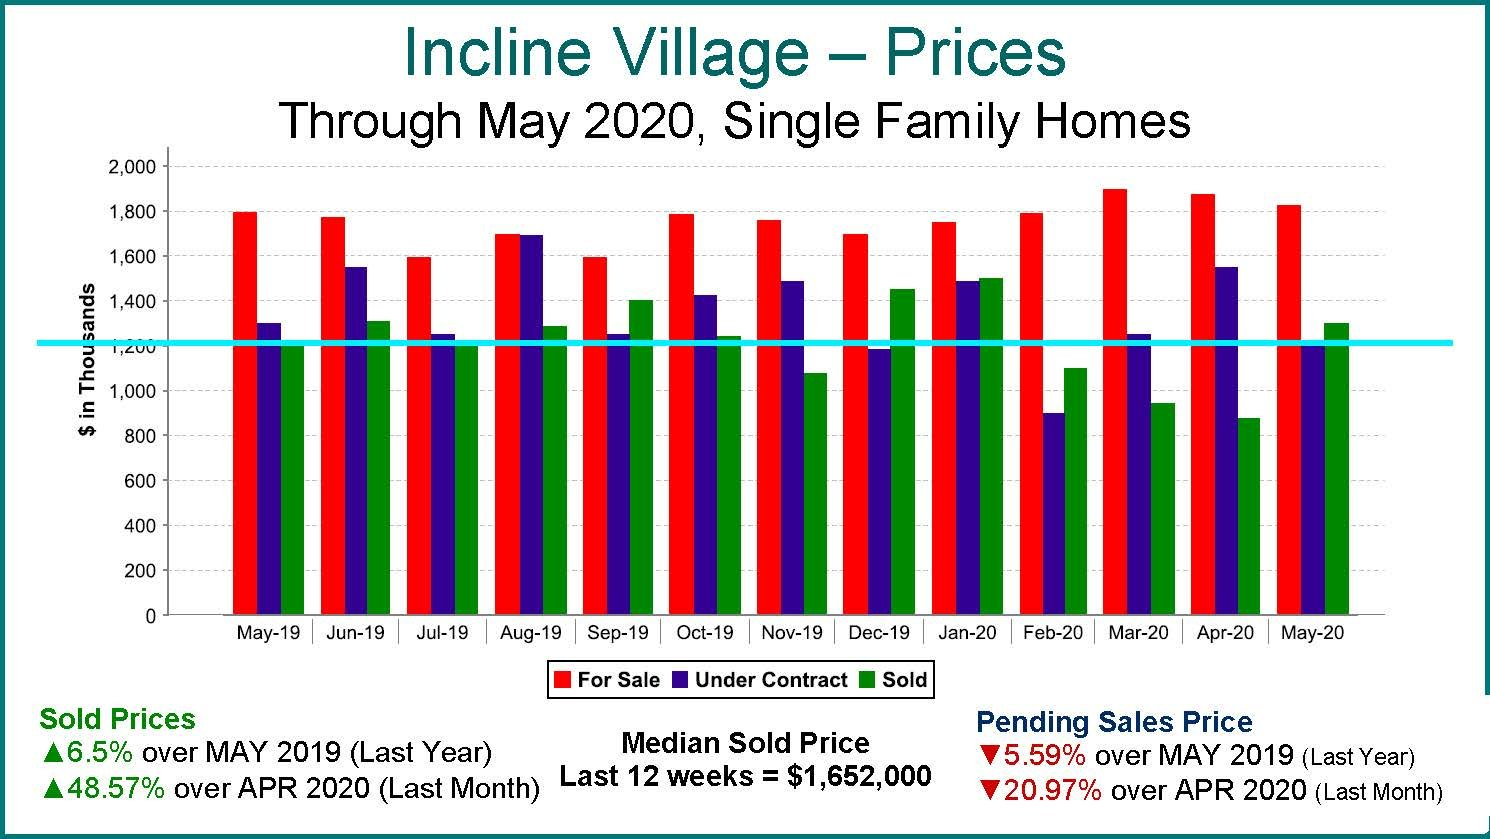 Incline Village Home Prices